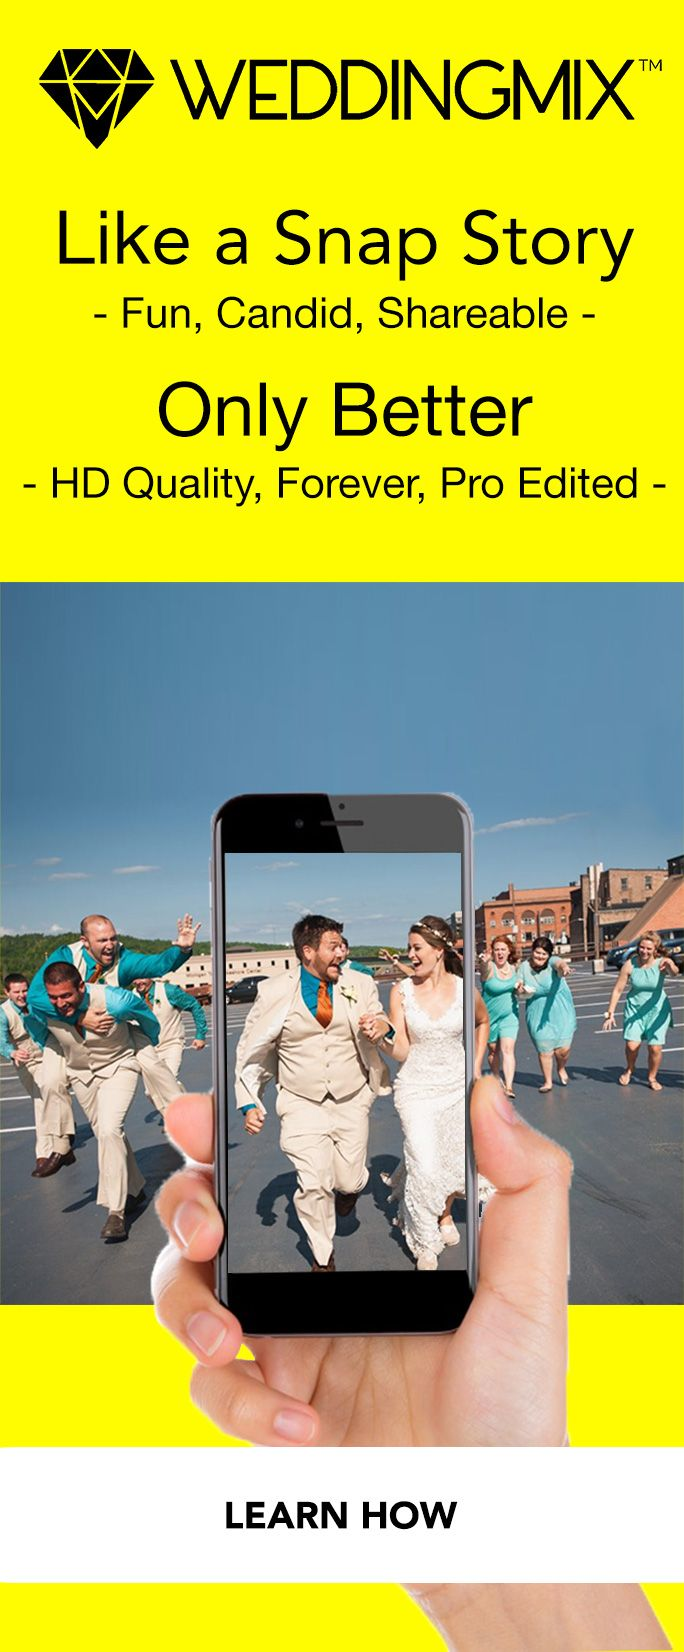 Turn your wedding snap story up a notch, and a lasting memory from your snapchat filter! Get all the fun, candid, shareable moments in a pro-edited, wedding video that you can watch every anniversary.